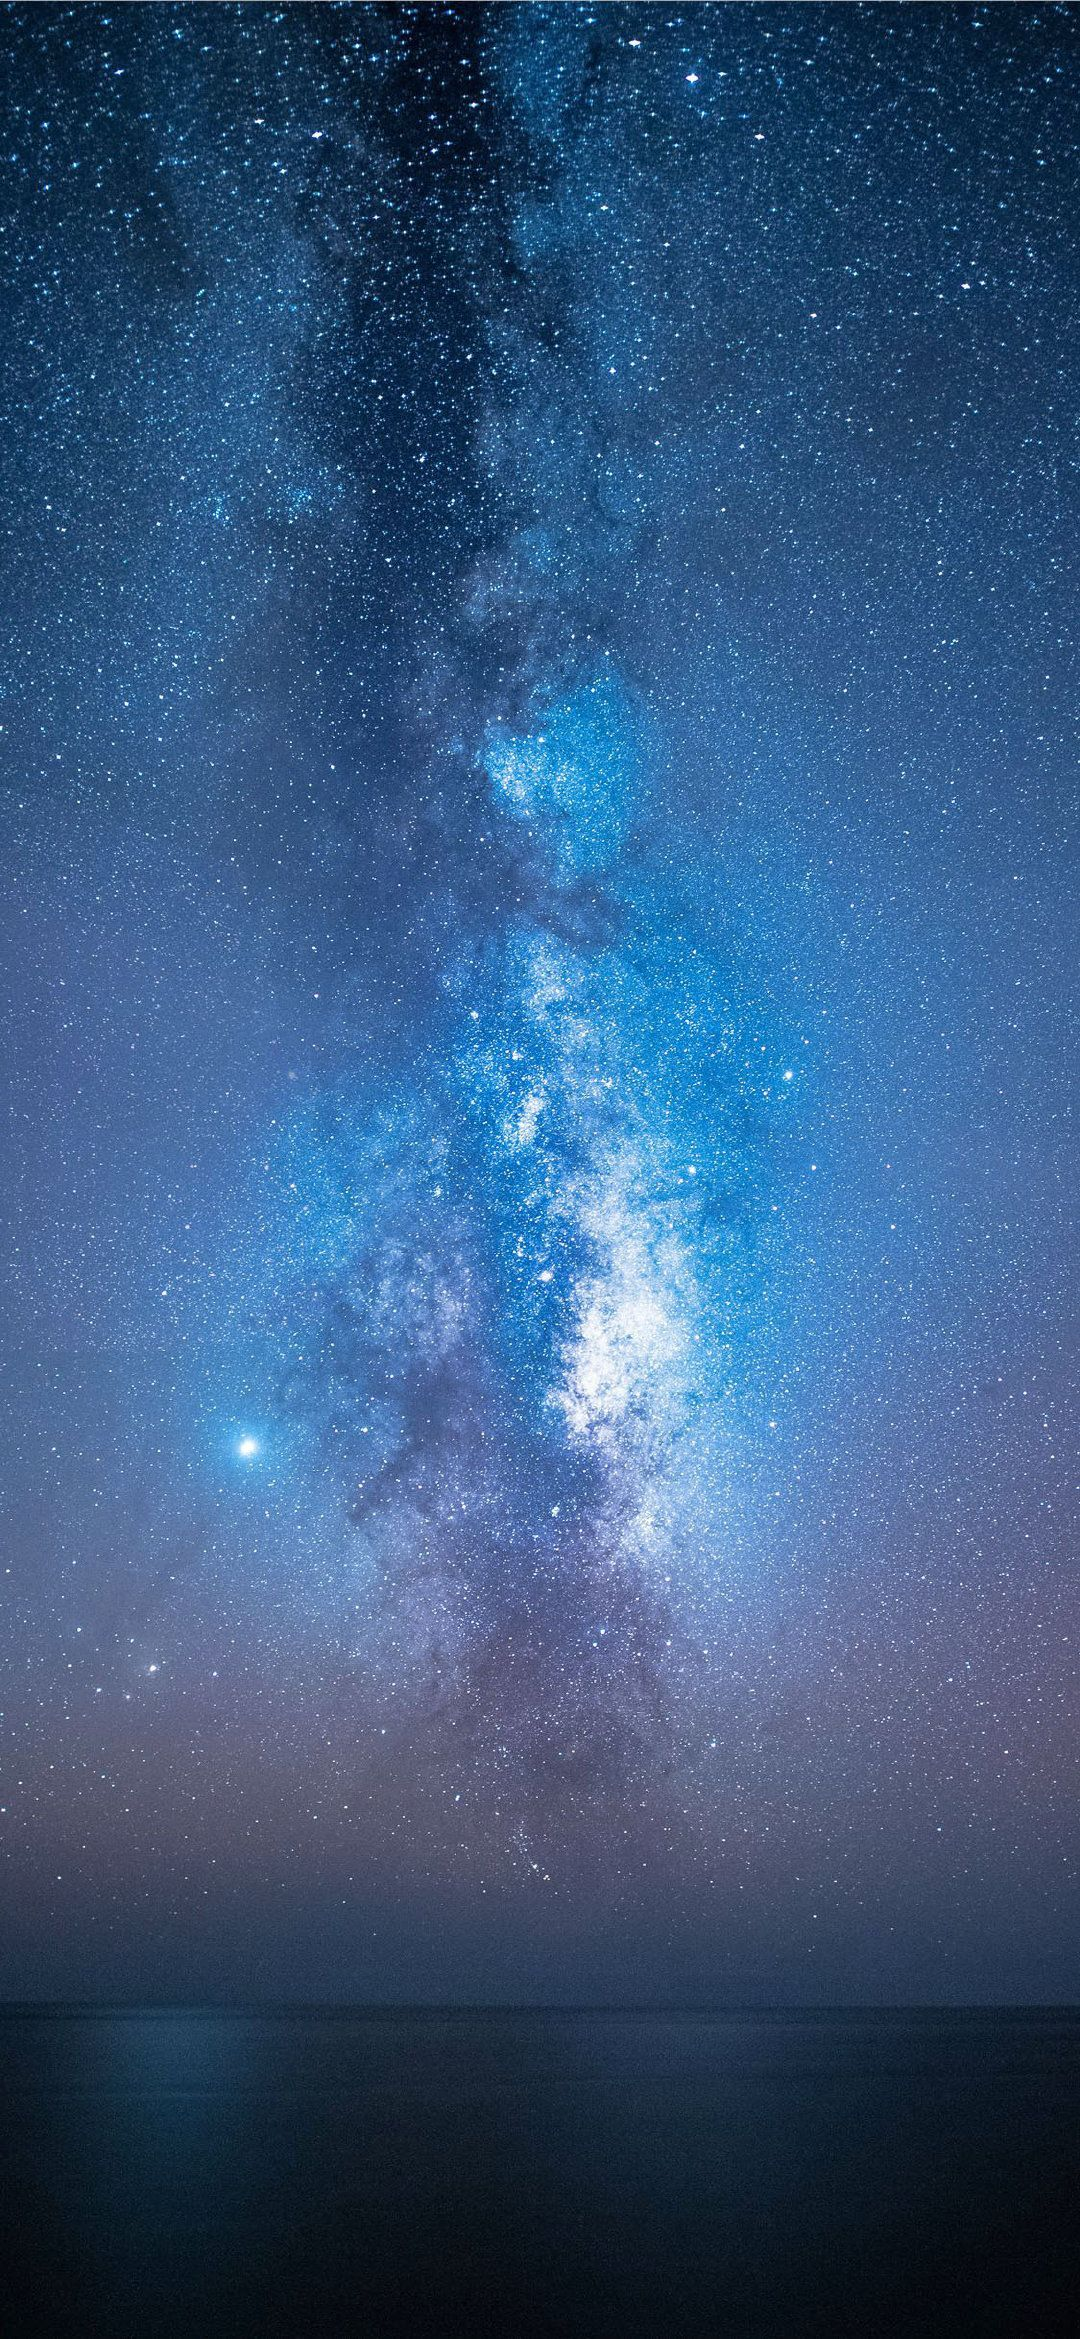 Phone Wallpaper View Of Milkyway Iphone 11 Wallpaper Nature Space Sky Galaxy Wal Backgr In 2020 Phone Wallpaper Wallpaper Space Iphone Background